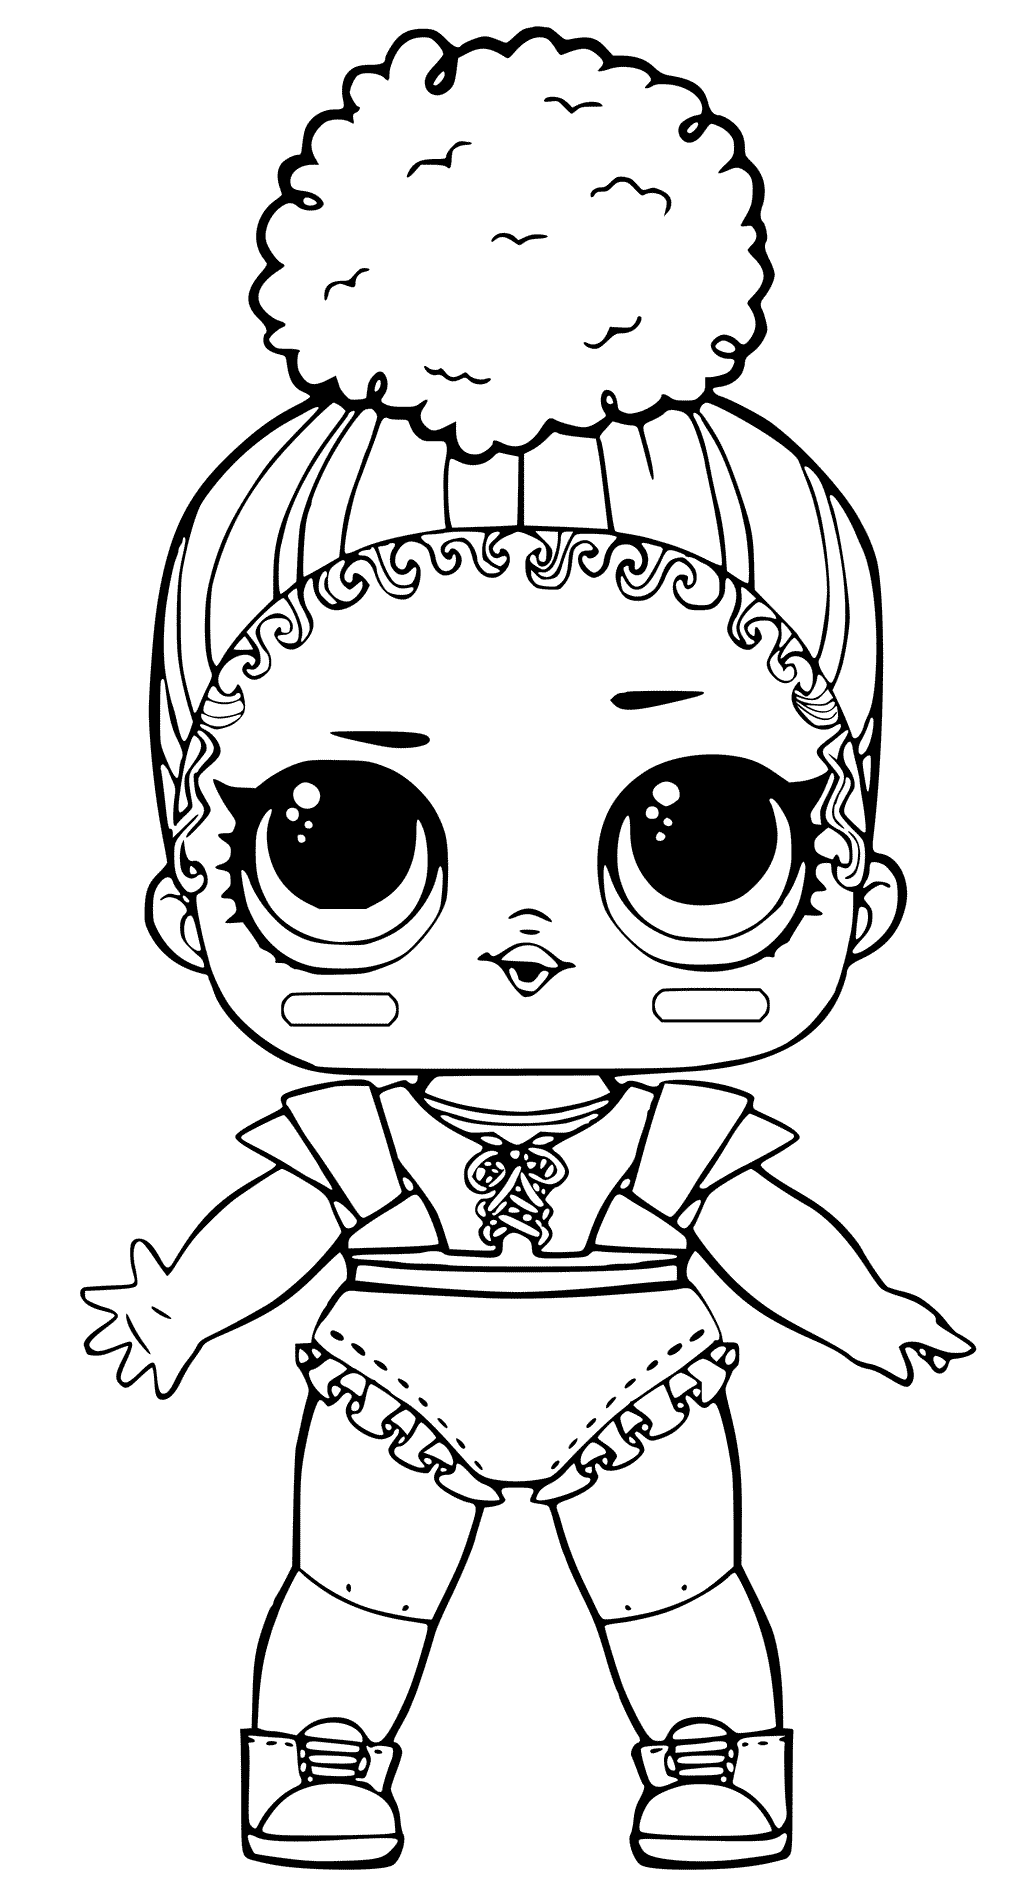 LOL Doll Coloring Pages ⋆ coloring.rocks! | Unicorn coloring pages, Baby coloring  pages, Coloring pages